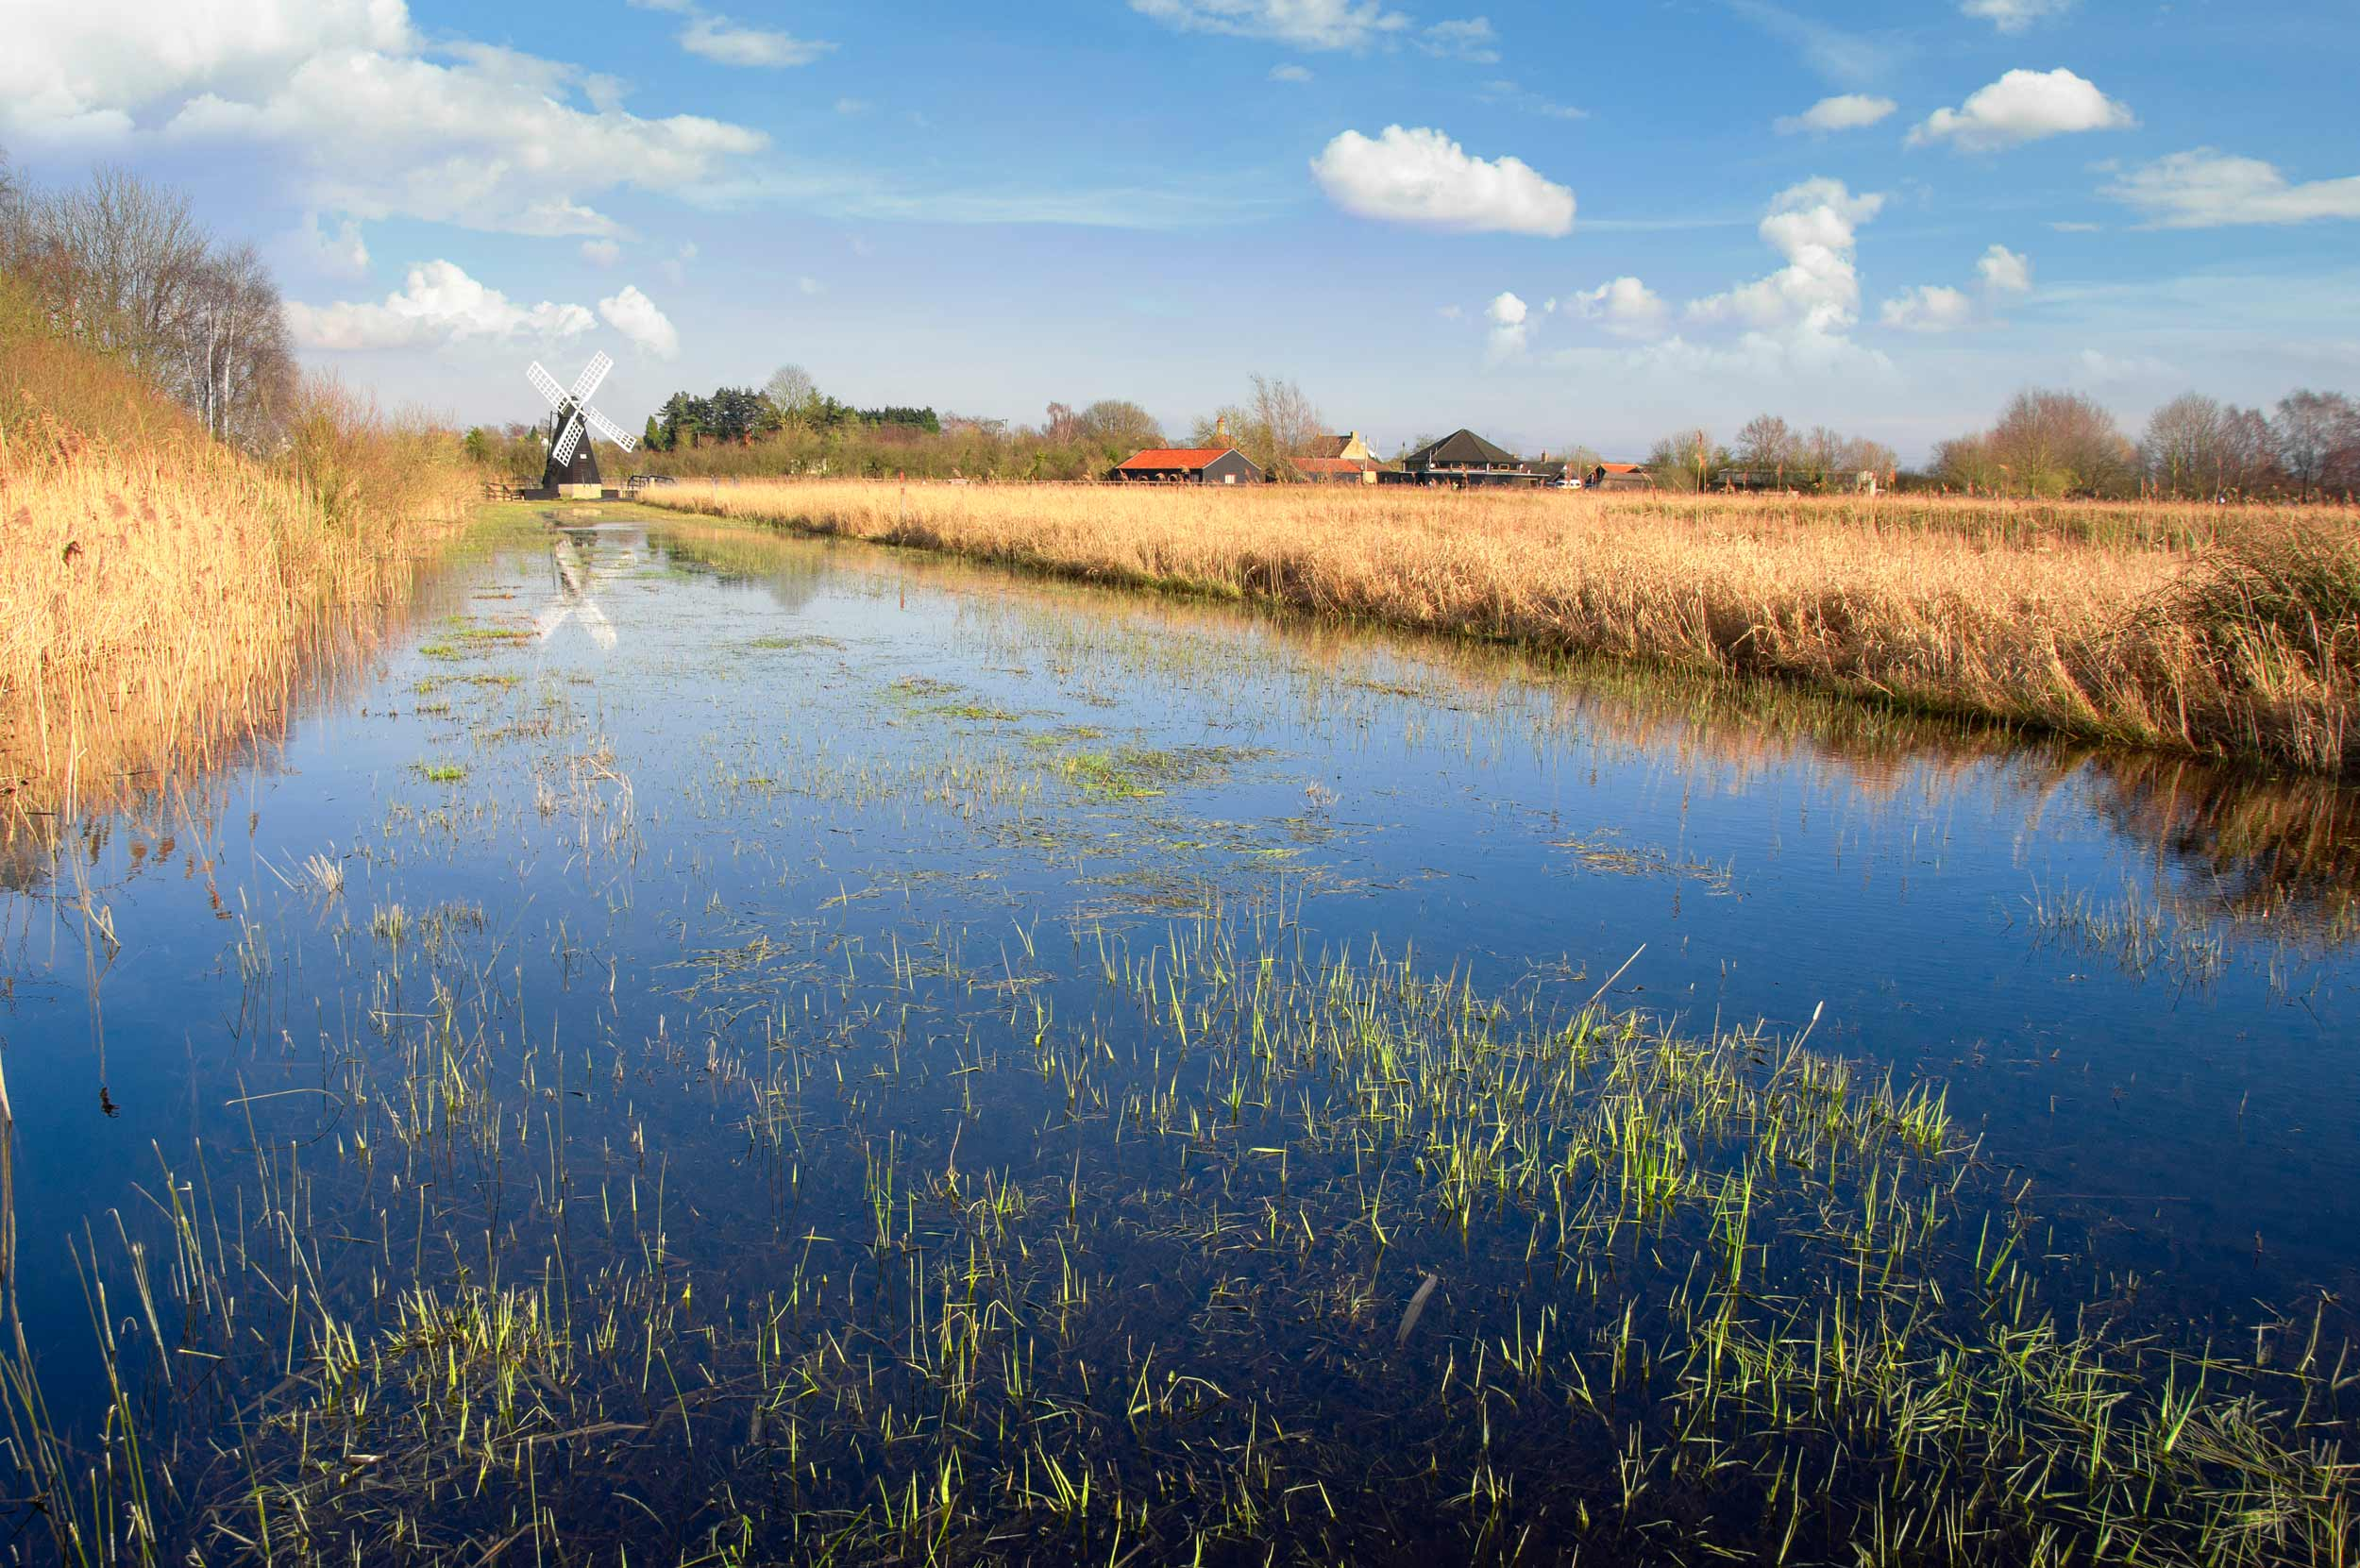 The Fens, England - a marshy region, artificially drained and transformed into arable farming areas, don't you know? (Radek Sturgolewski/Shutterstock)